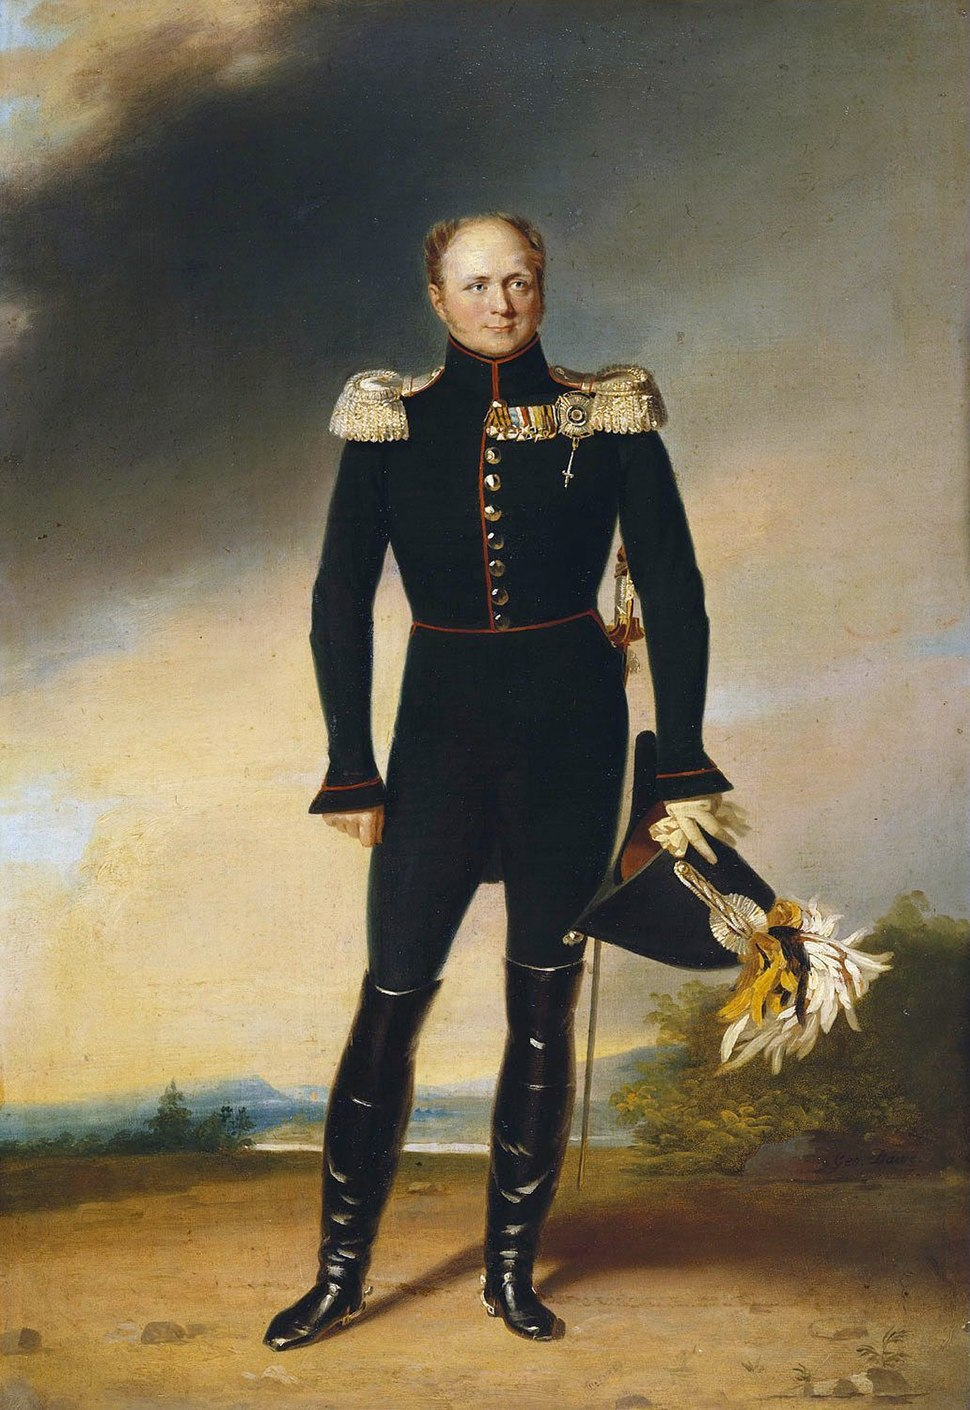 Alexander I of Russia by G.Dawe (1817, Royal coll. of UK)